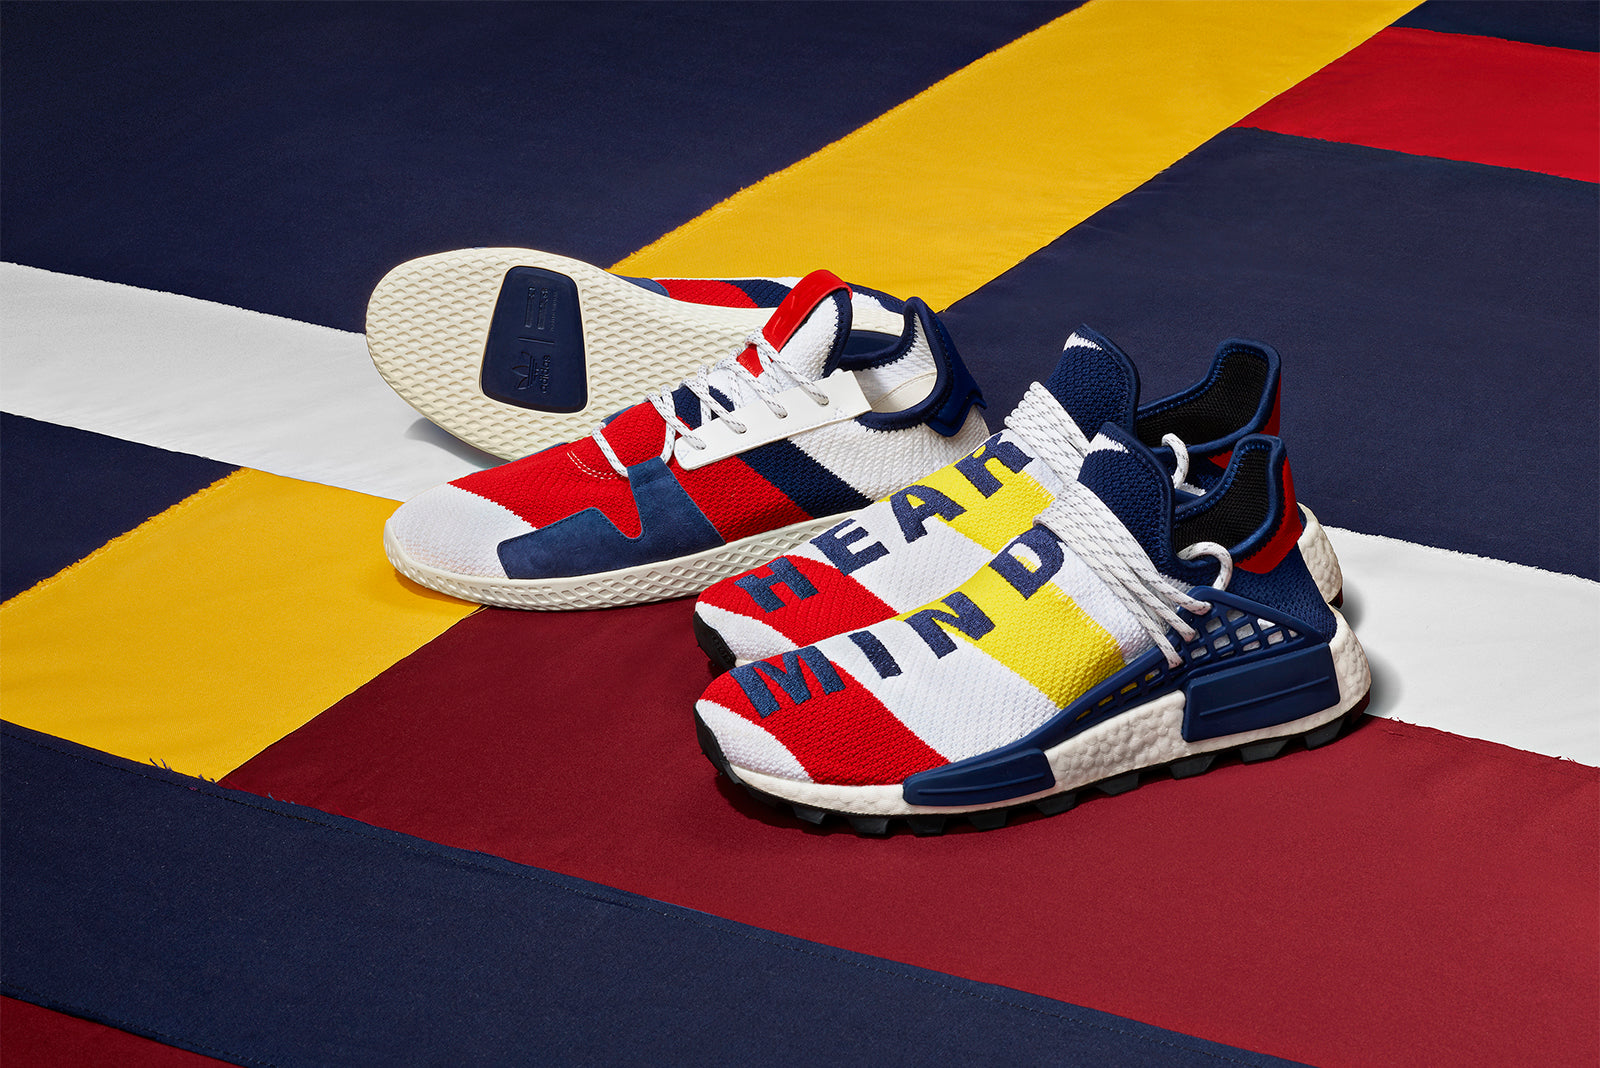 ec029d6e5 adidas Originals and Pharrell Williams continue their collaborative  partnership with the third instalment of the adidas Originals by  Billionaire Boys Club ...